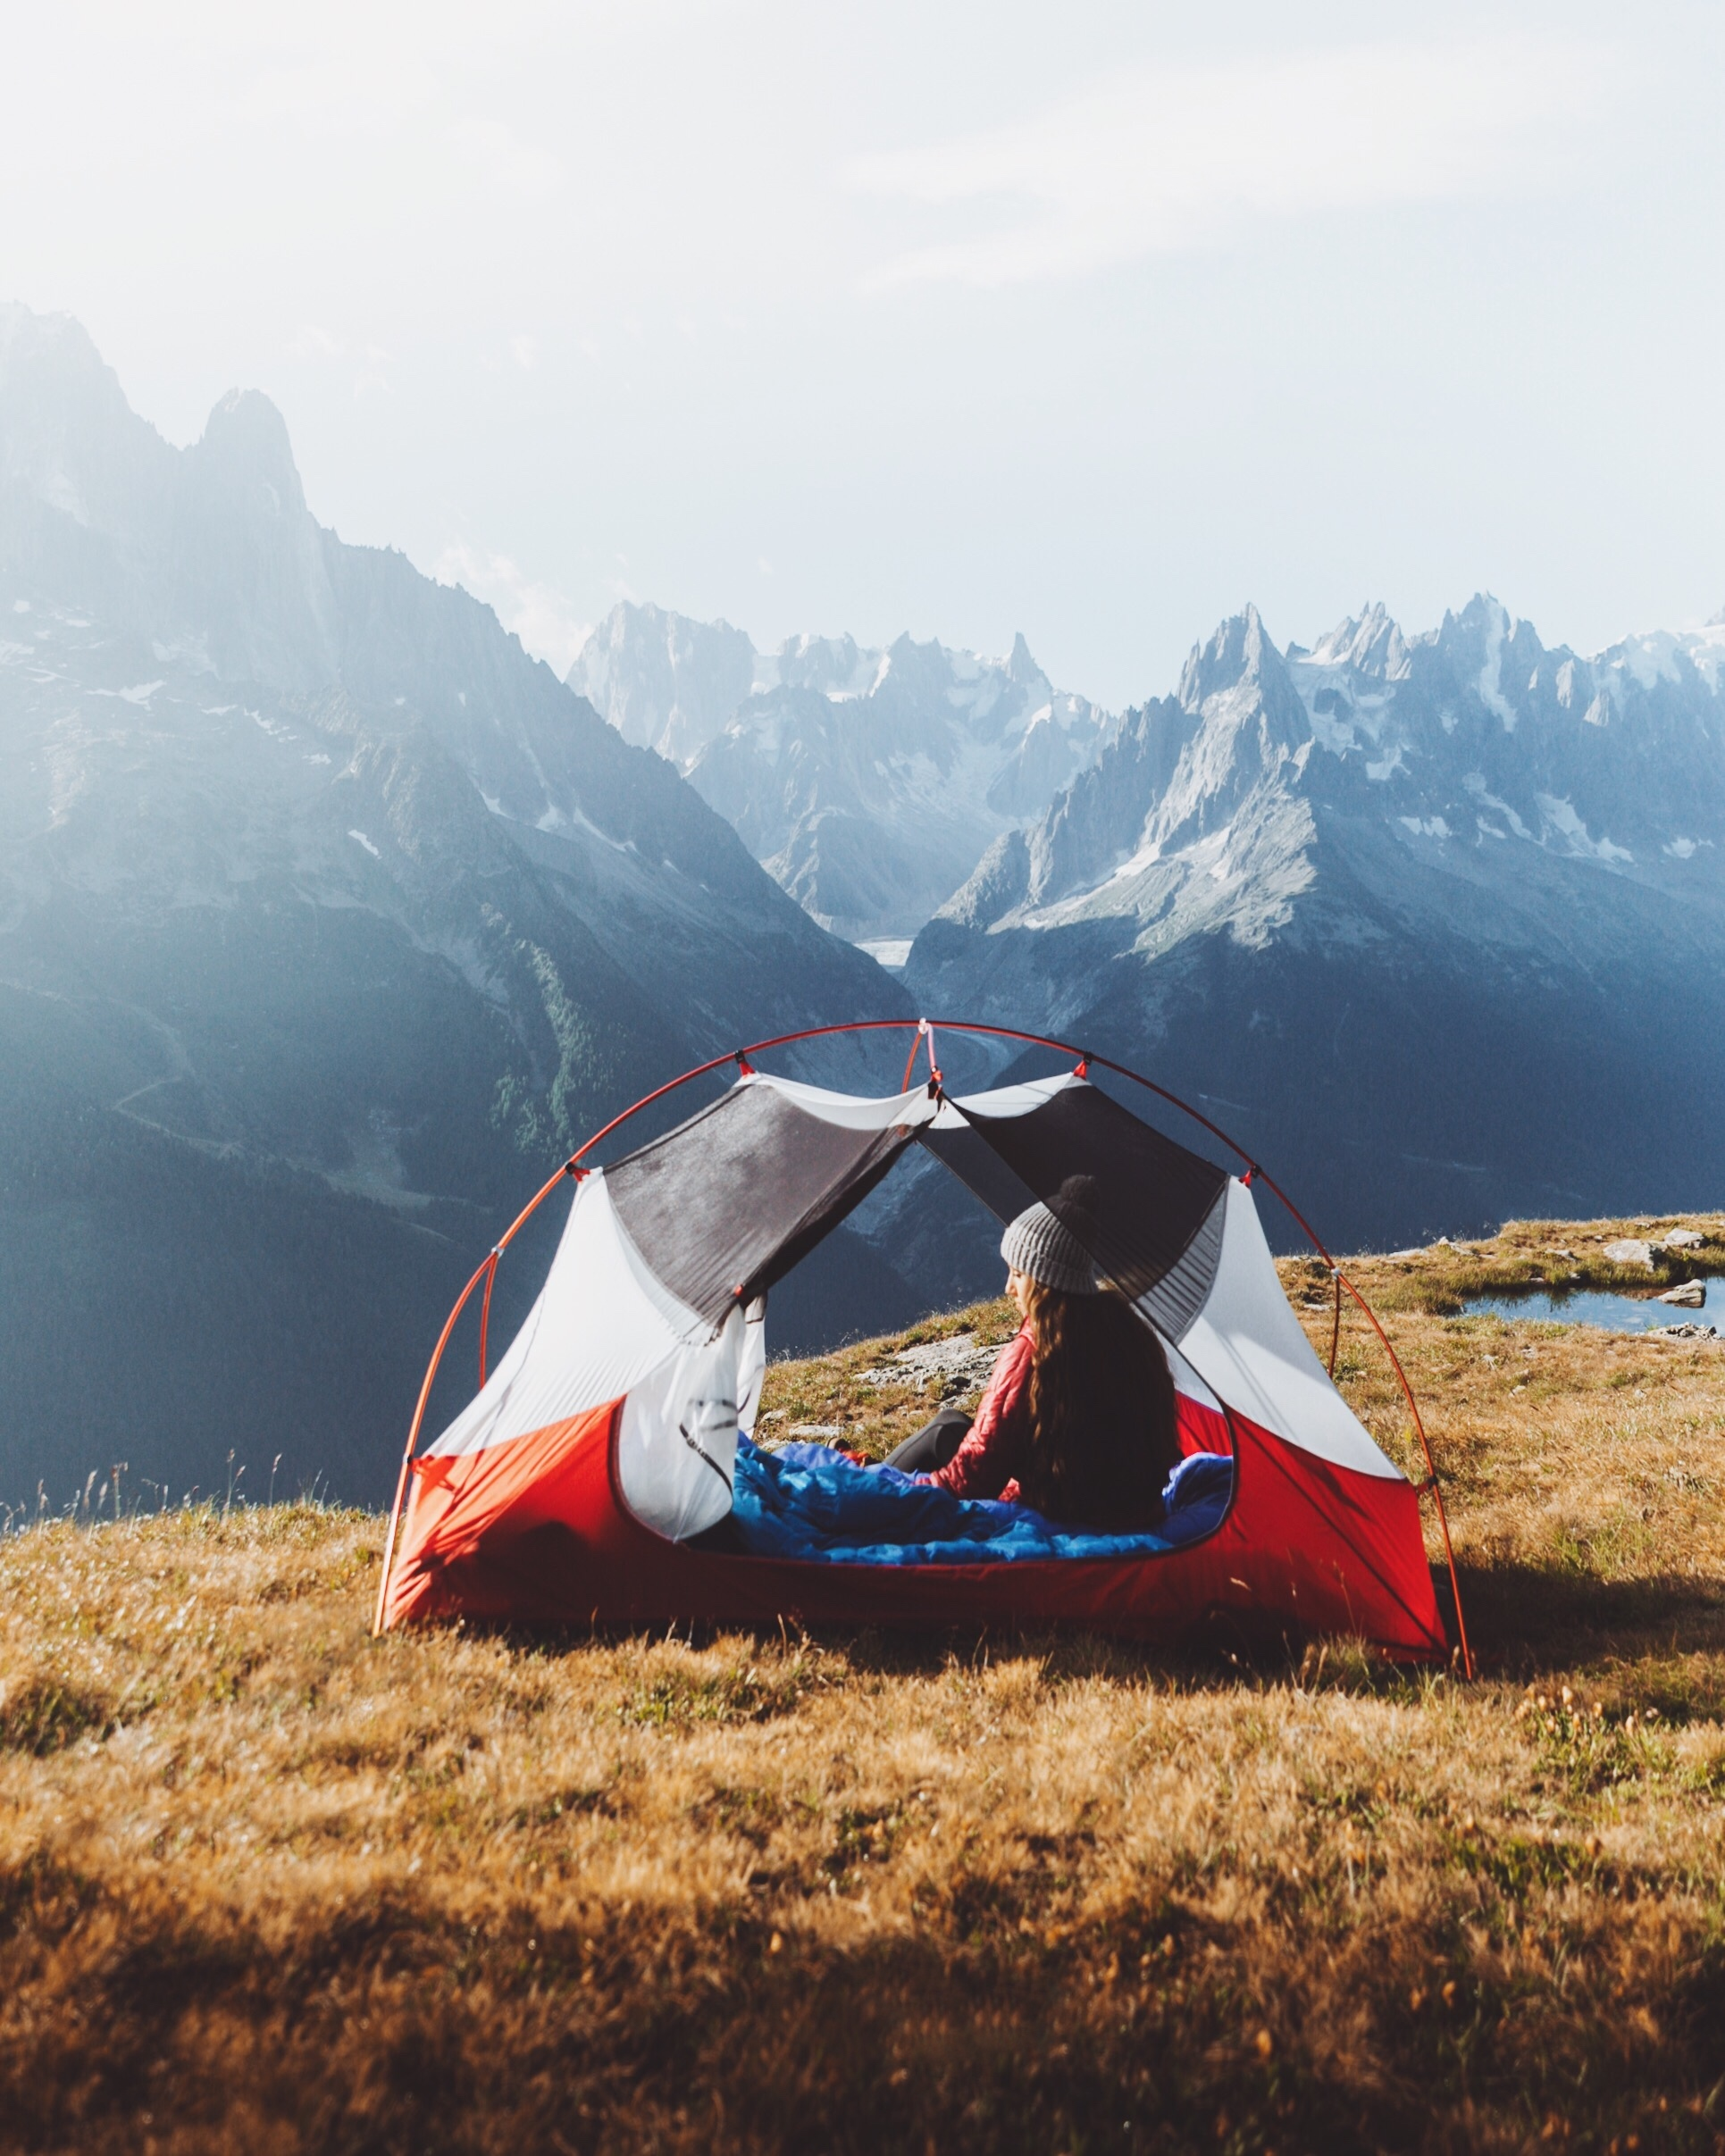 Backcountry Camping A Guide For Beginners Alexandra Taylor